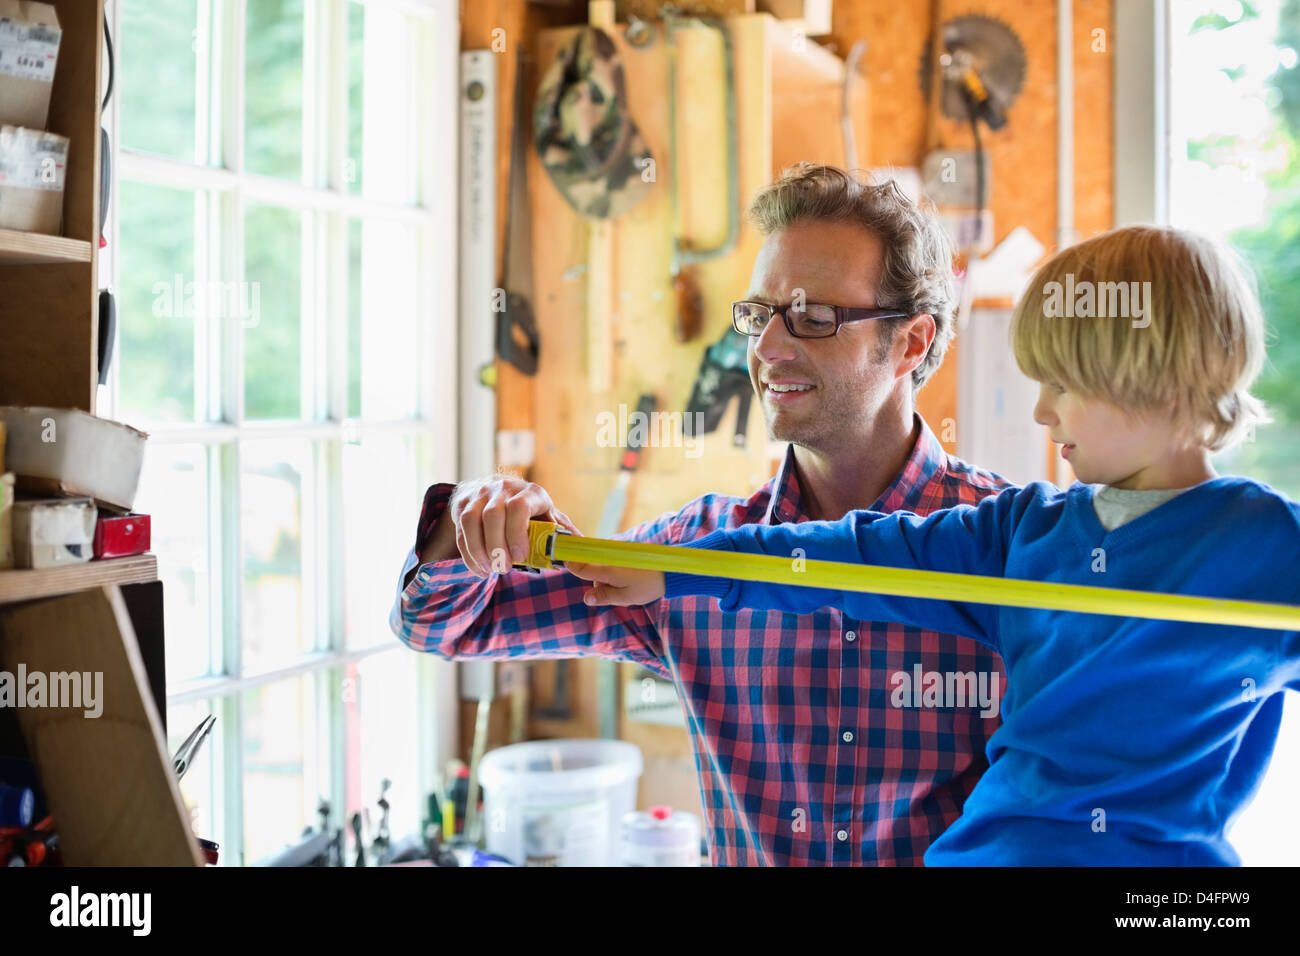 Father and son working in garage - Stock Image